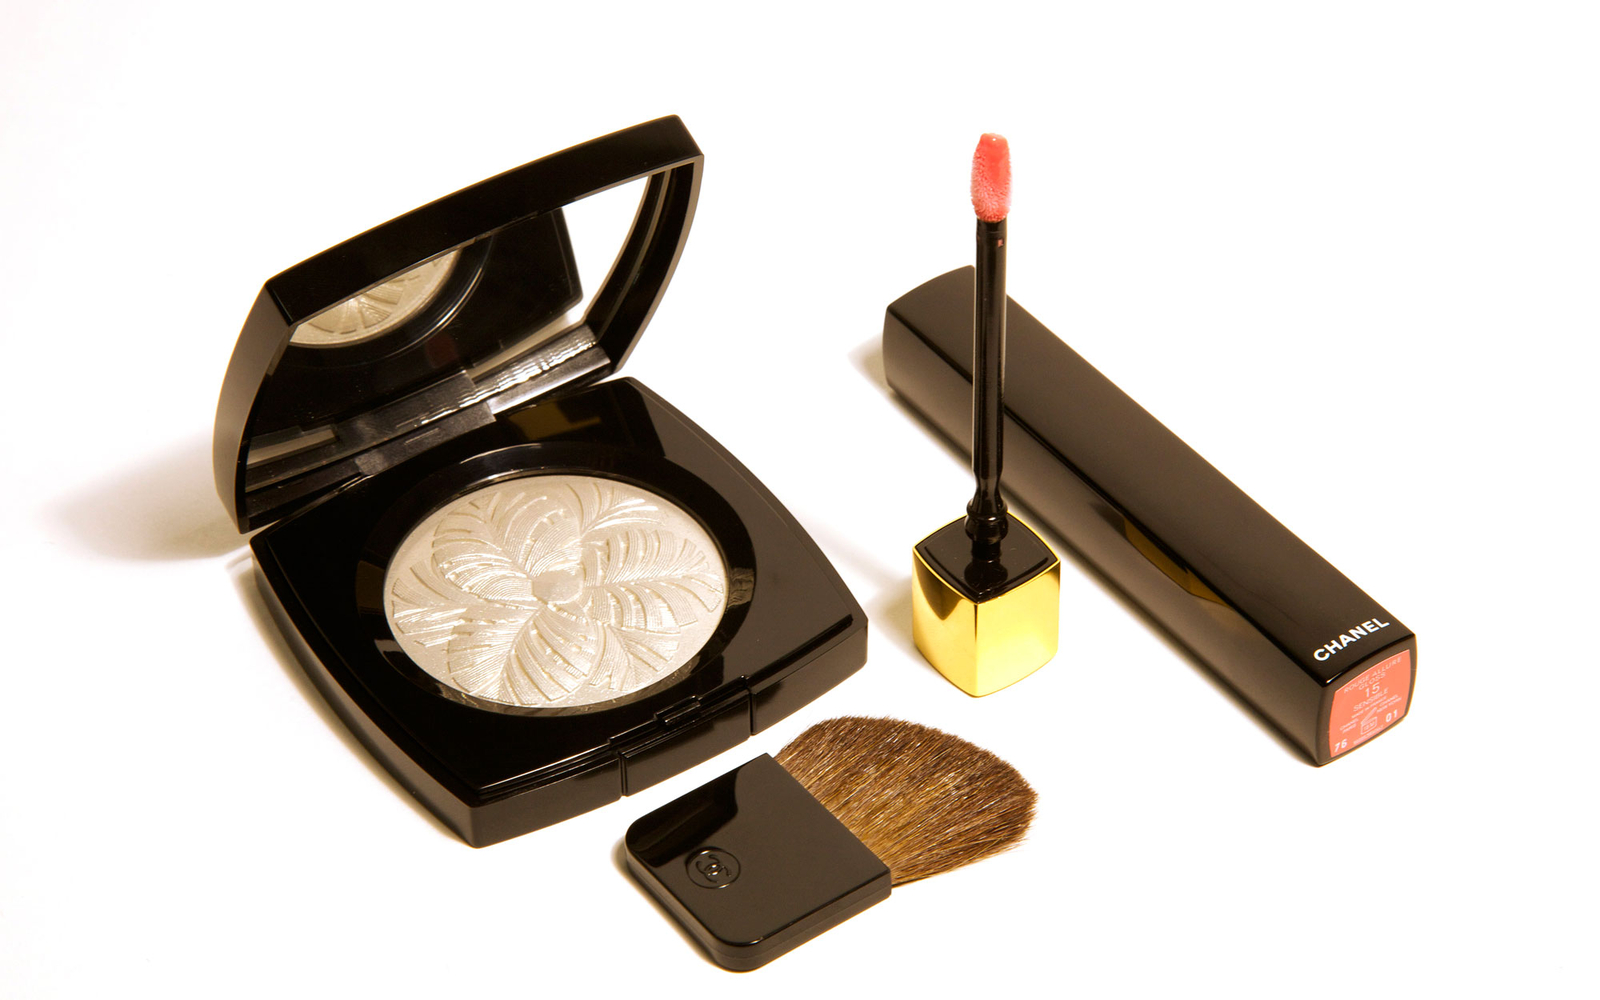 Chanel Camélia de Plumes Highlighting Powder and Chanel Rouge Allure Gloss Colour & Shine Lipgloss in One Click